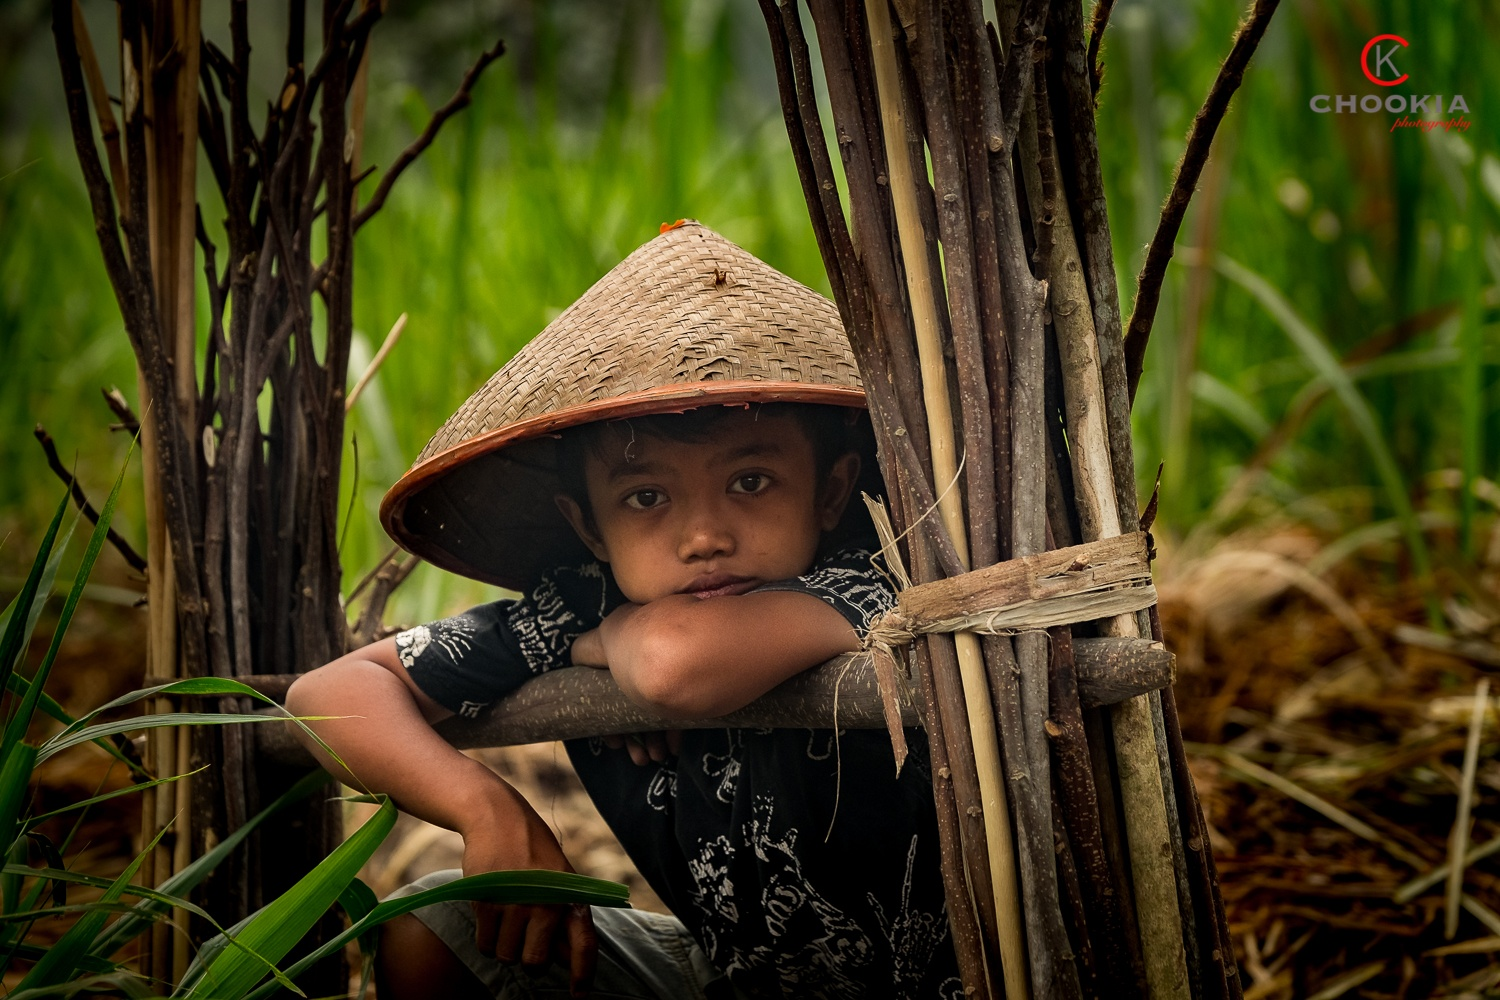 Take a Rest II Malang.Indonesia.  by chookia